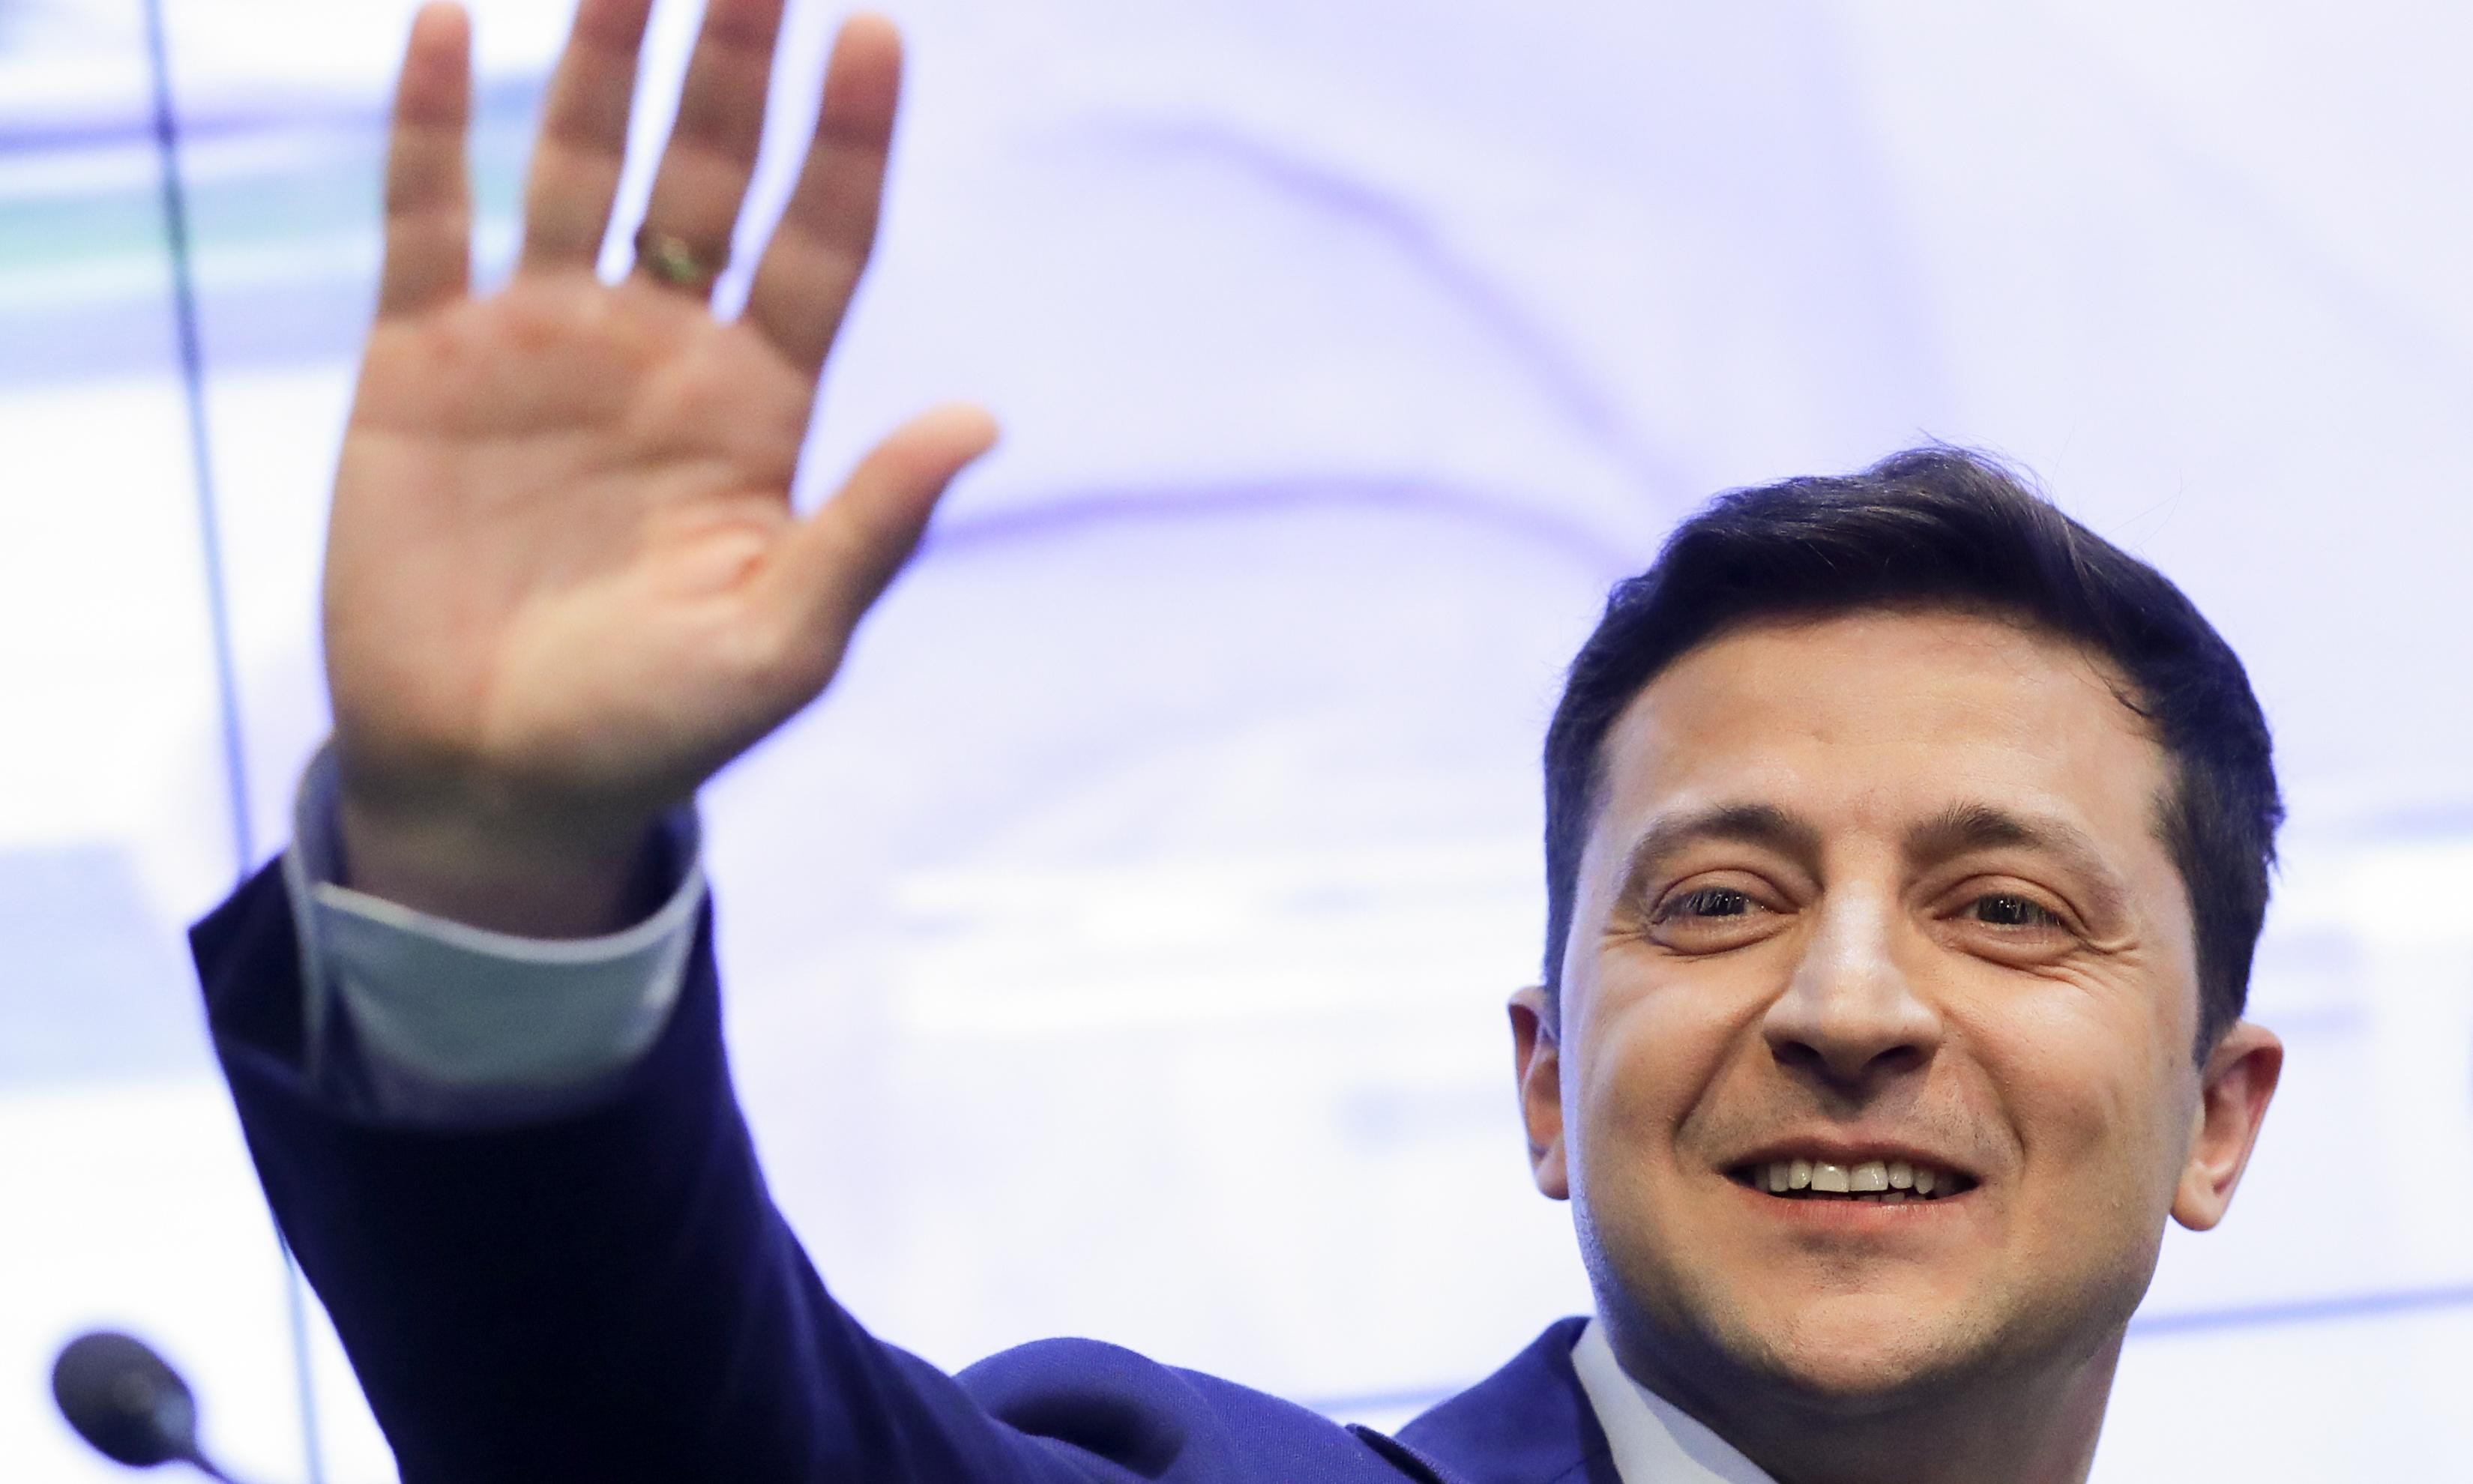 Zelenskiy wins second round of Ukraine's presidential election – exit poll